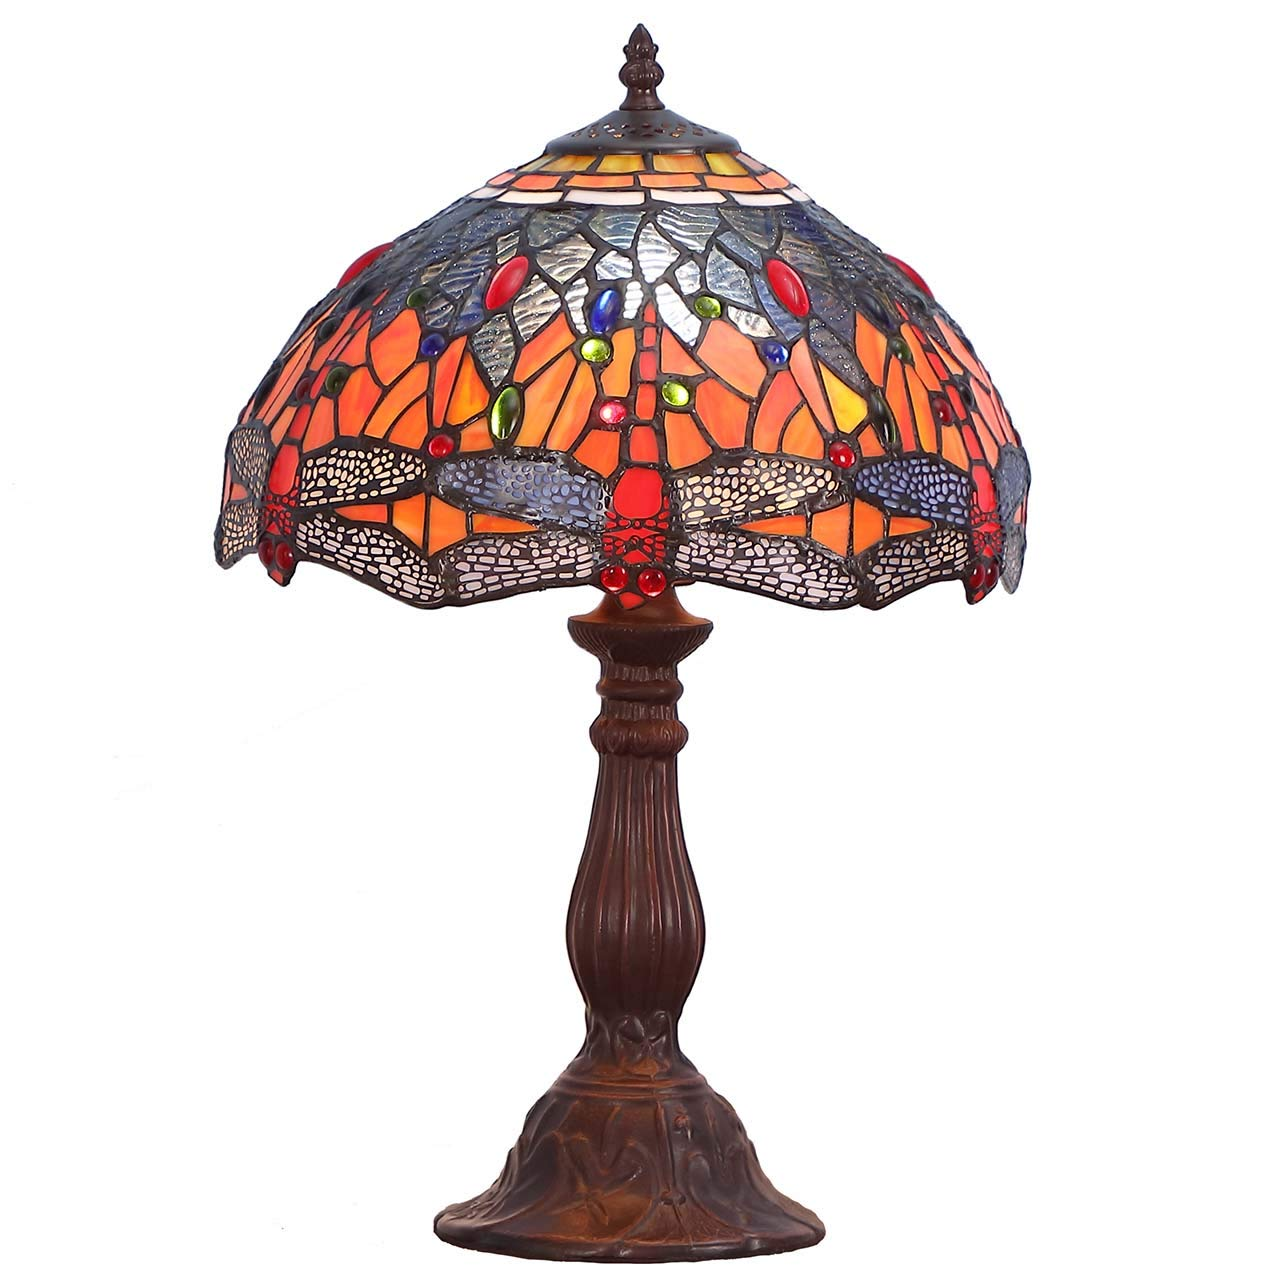 Bieye L10689 Dragonfly Tiffany Style Stained Glass Table Lamp with 12 Inch Wide 6 Dragonflies on Lampshade and Metal Base, Orange Blue, 12 W x 18 H